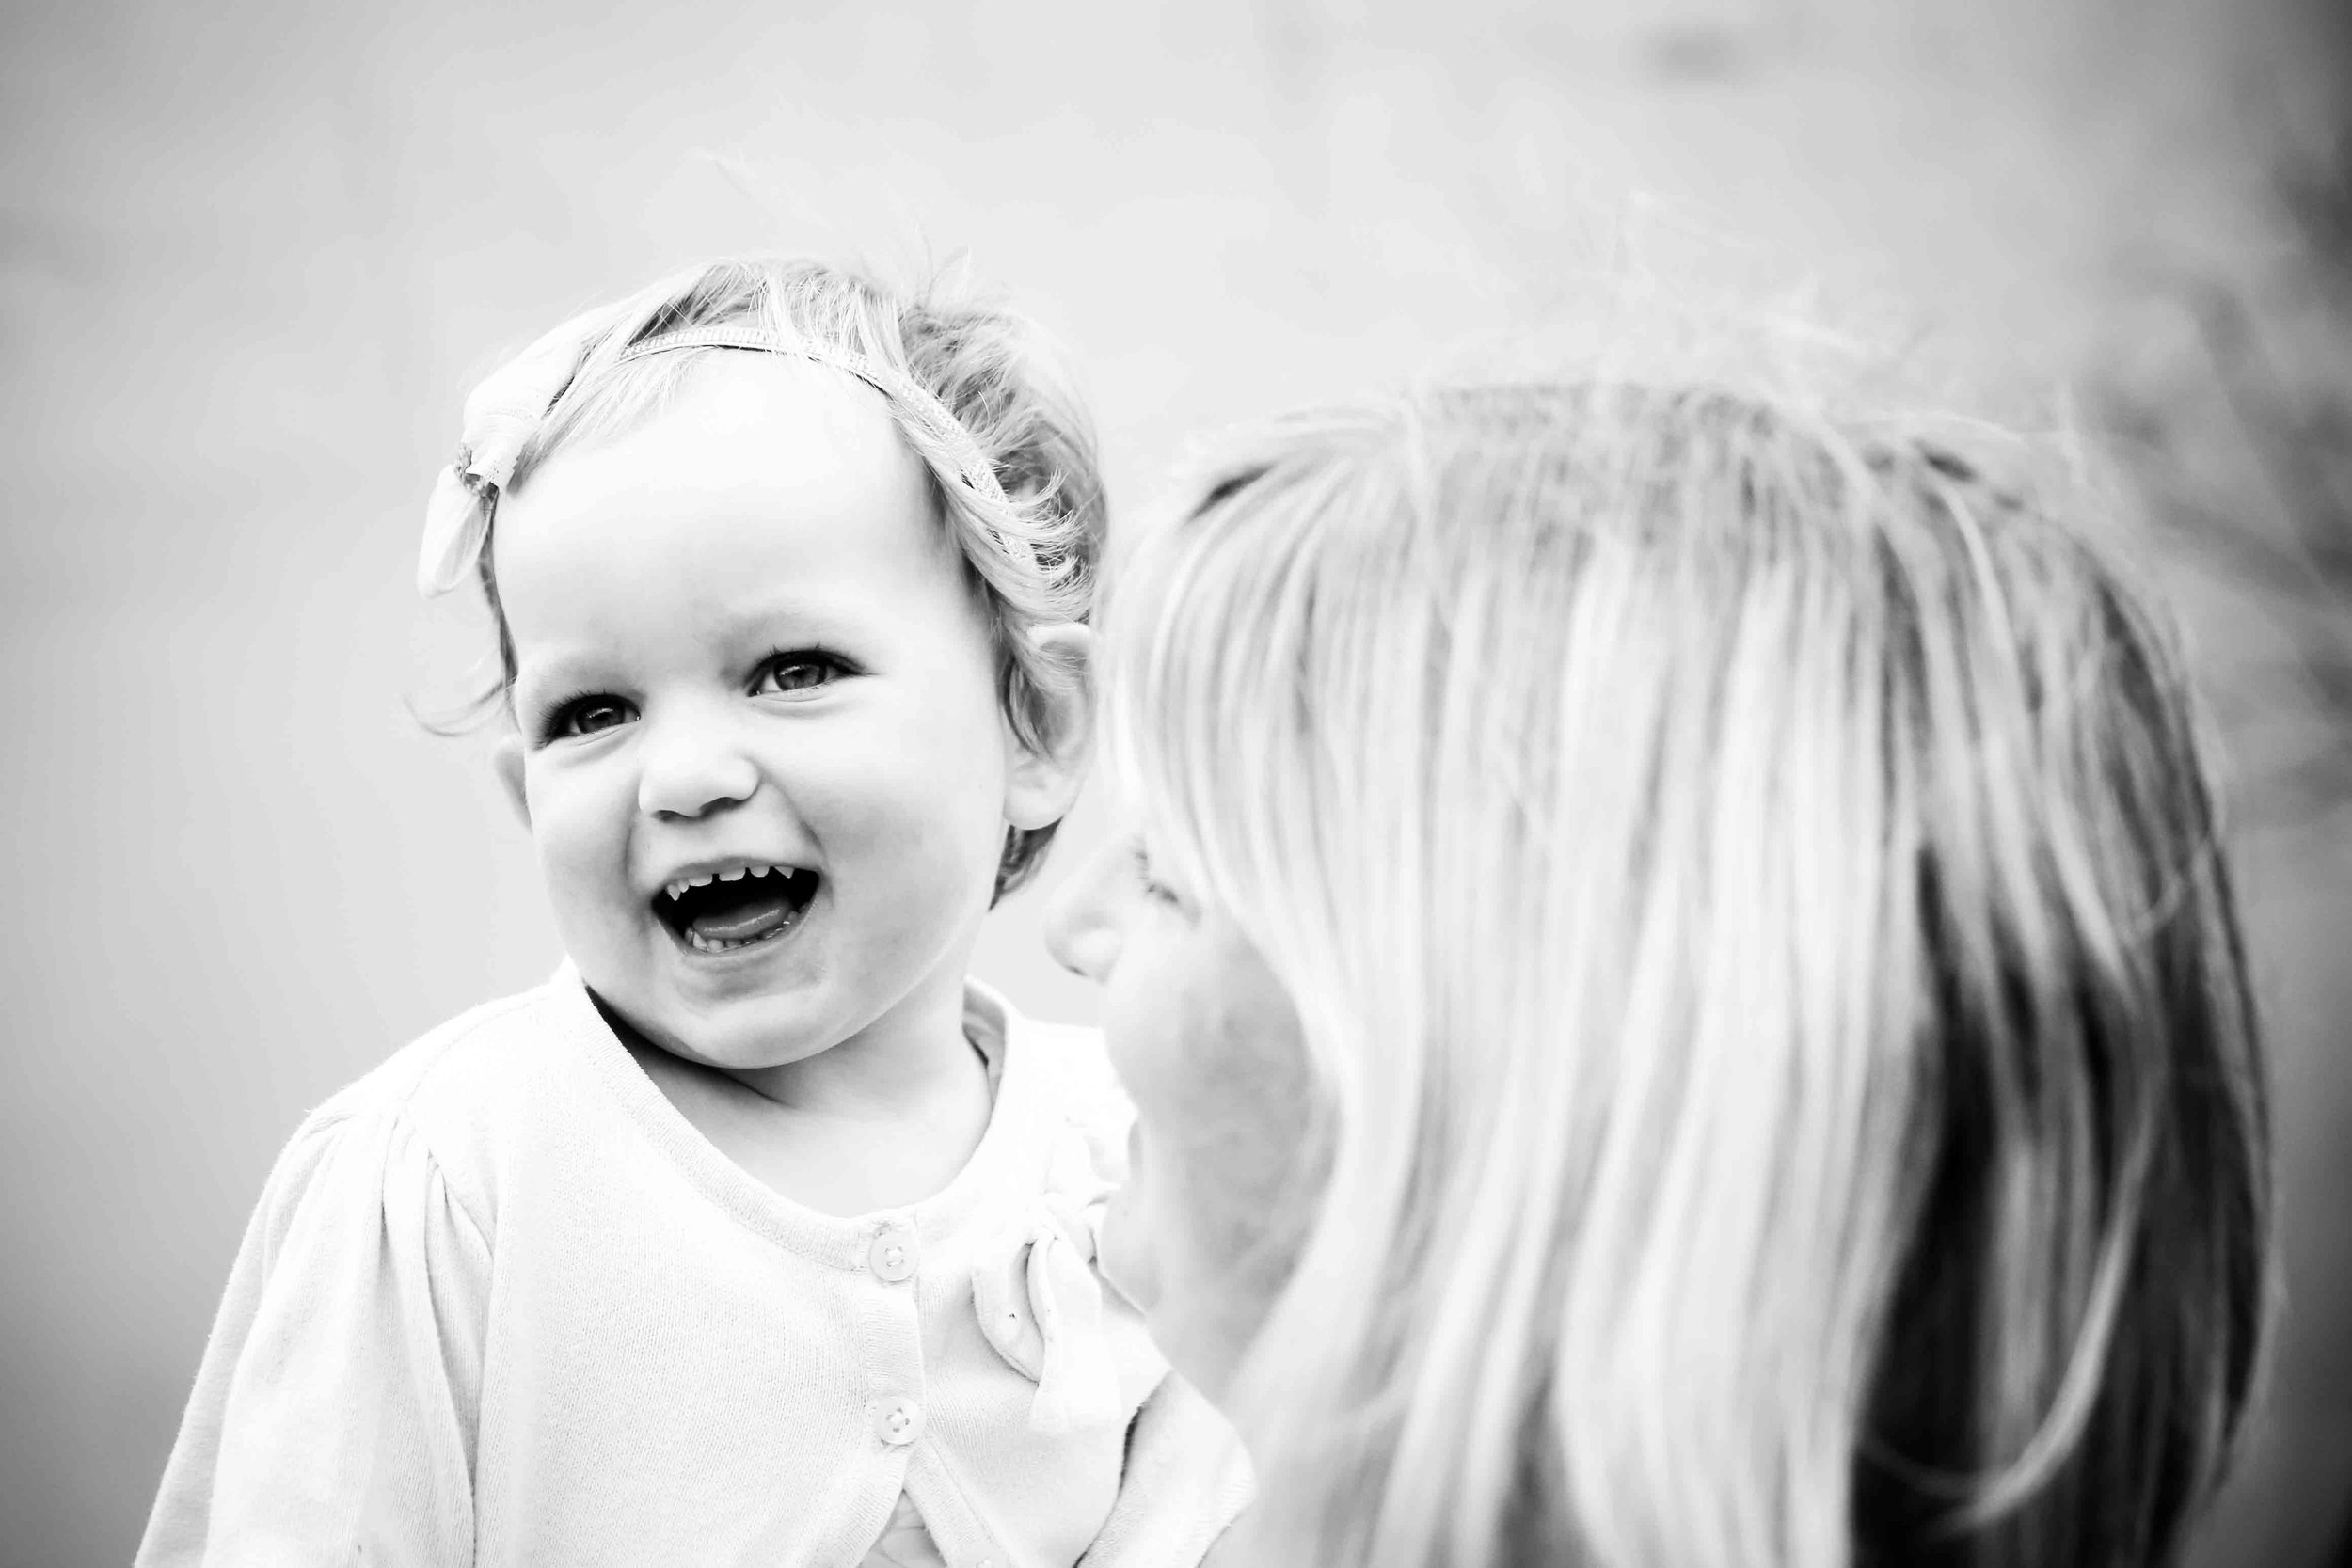 """""""We LOVE LOVE LOVE the video & photos, thank you so much for beautiful happy smiley scrumptious pictures! We love the music too, and had a lot of fun laughing at the film - can't wait to show the family now!"""" Sarah"""